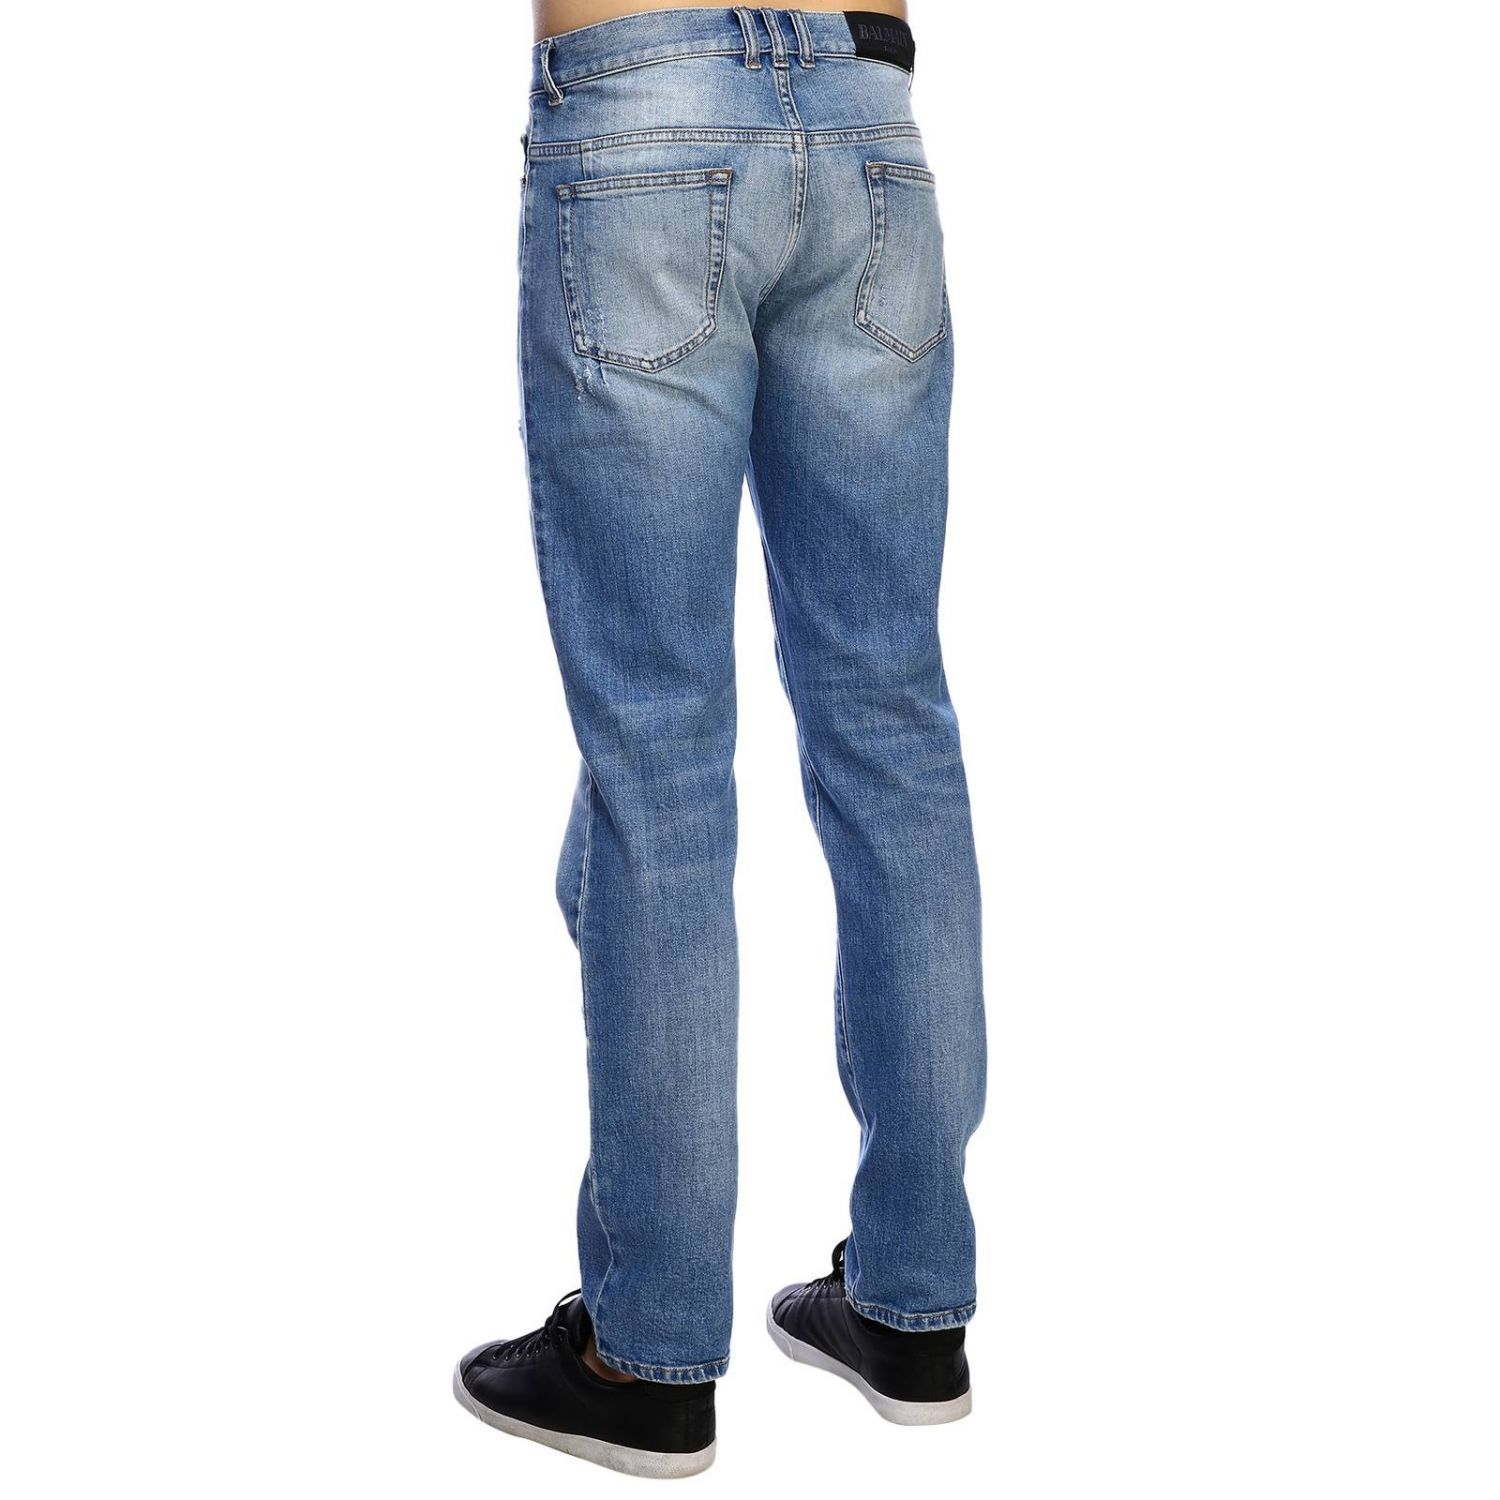 Jeans Balmain: Balmain slim fit jeans in used effect denim with maxi breaks and logoed patches stone washed 3